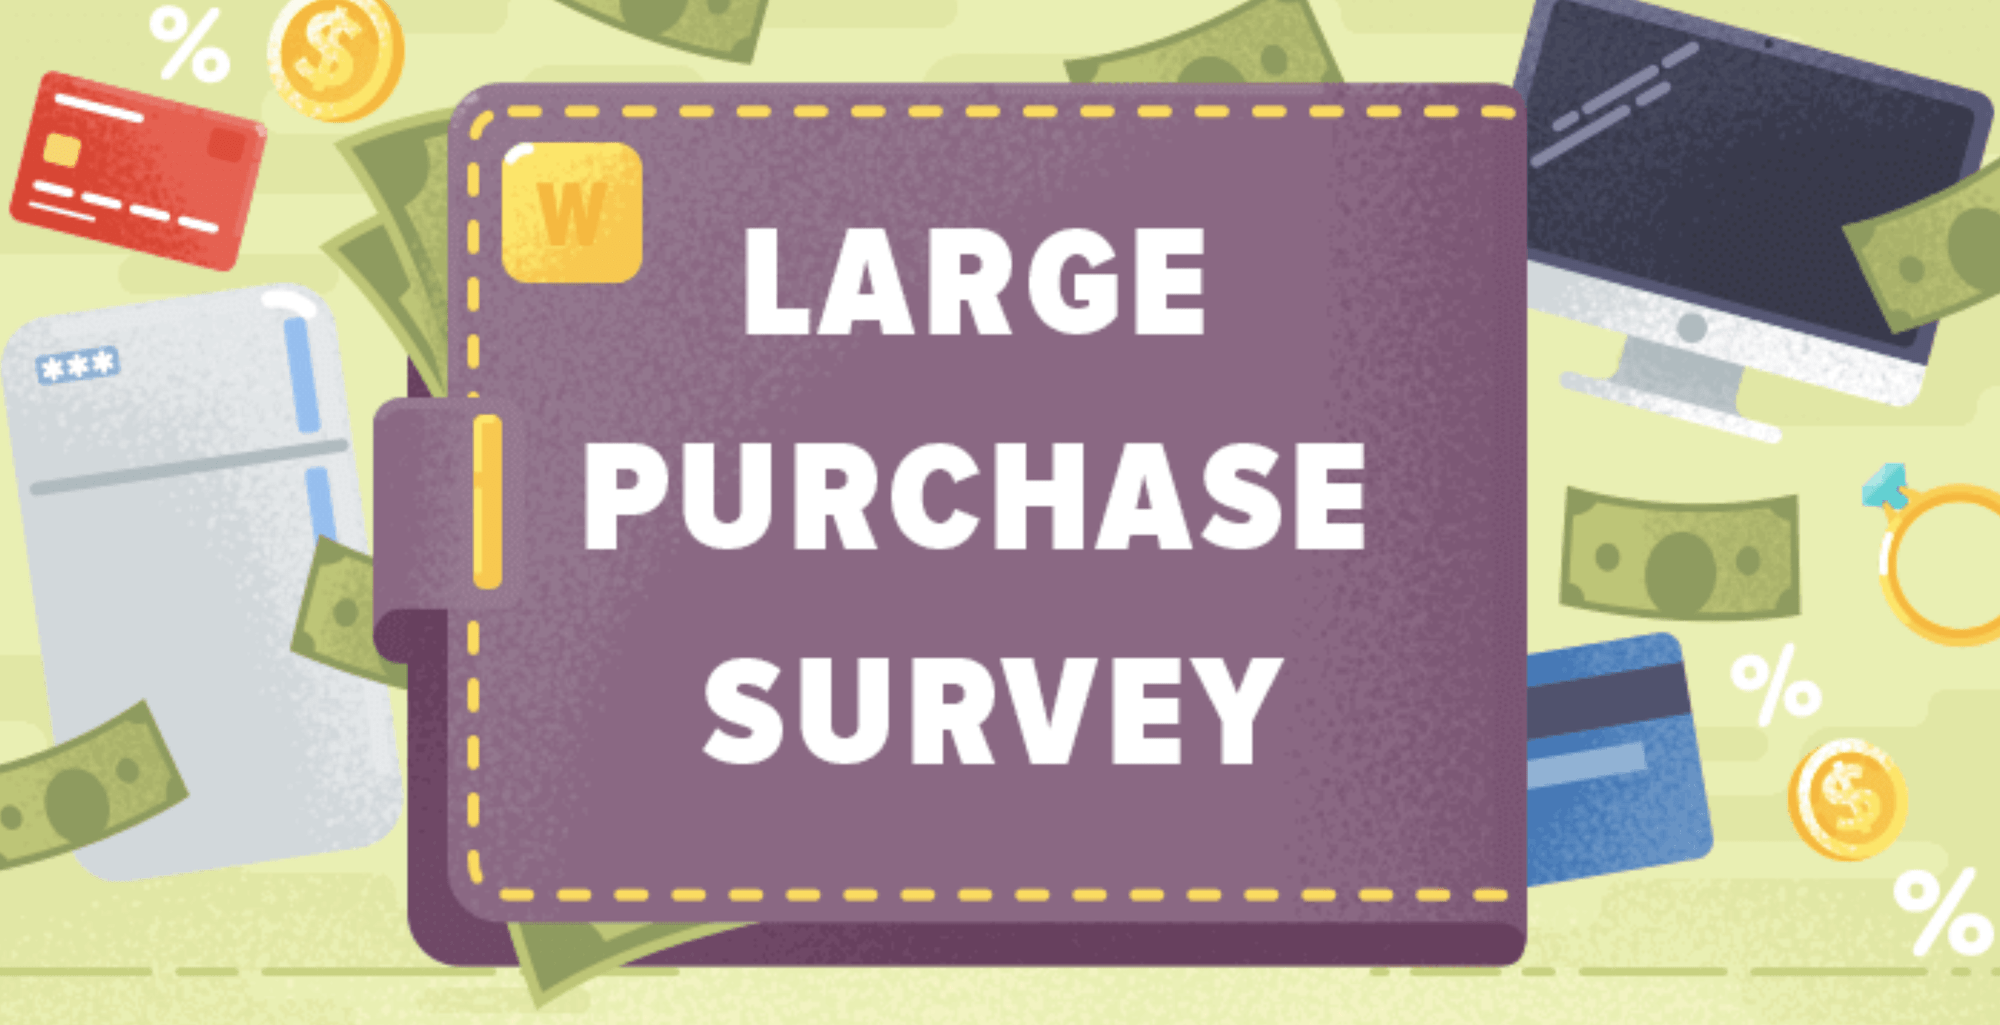 Survey Finds 42% of Americans Avoided Large Purchases Last Year